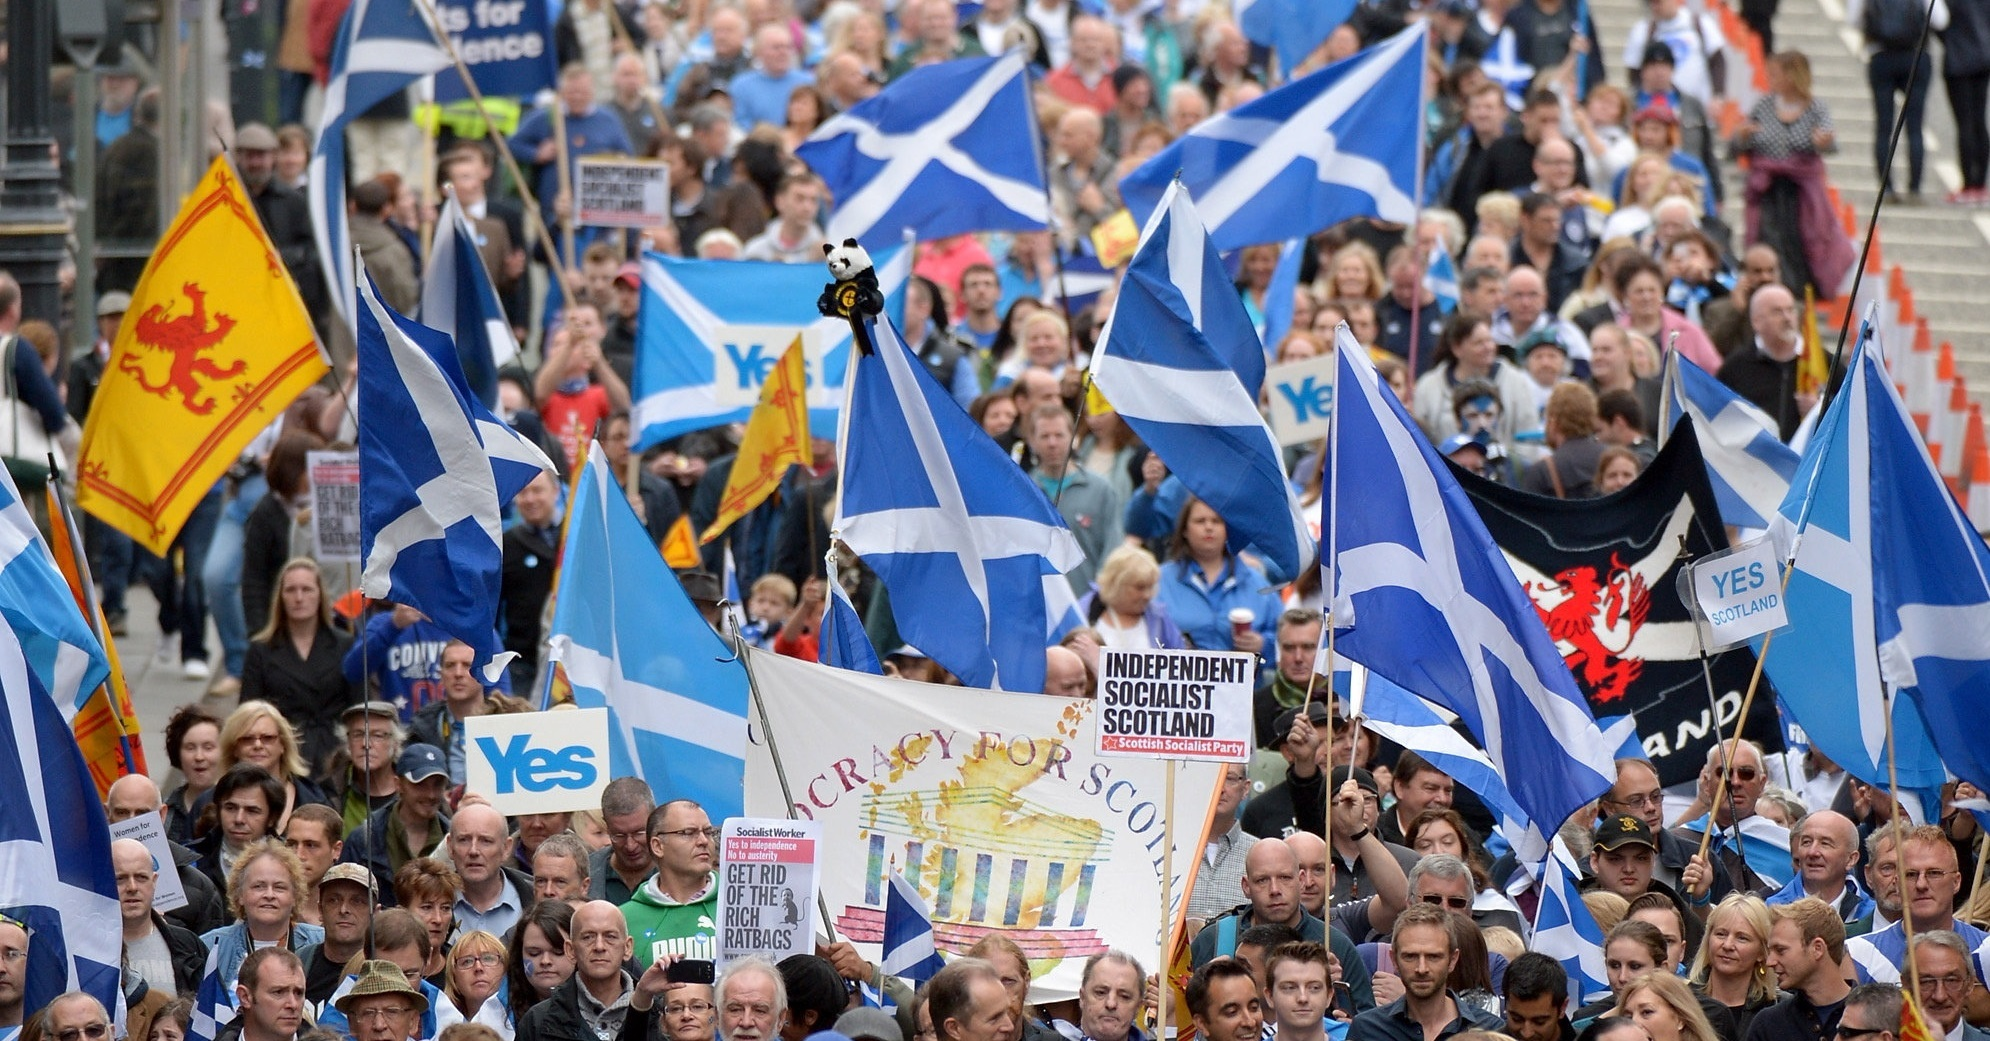 Why I will be voting a different way when indyref2 comes along